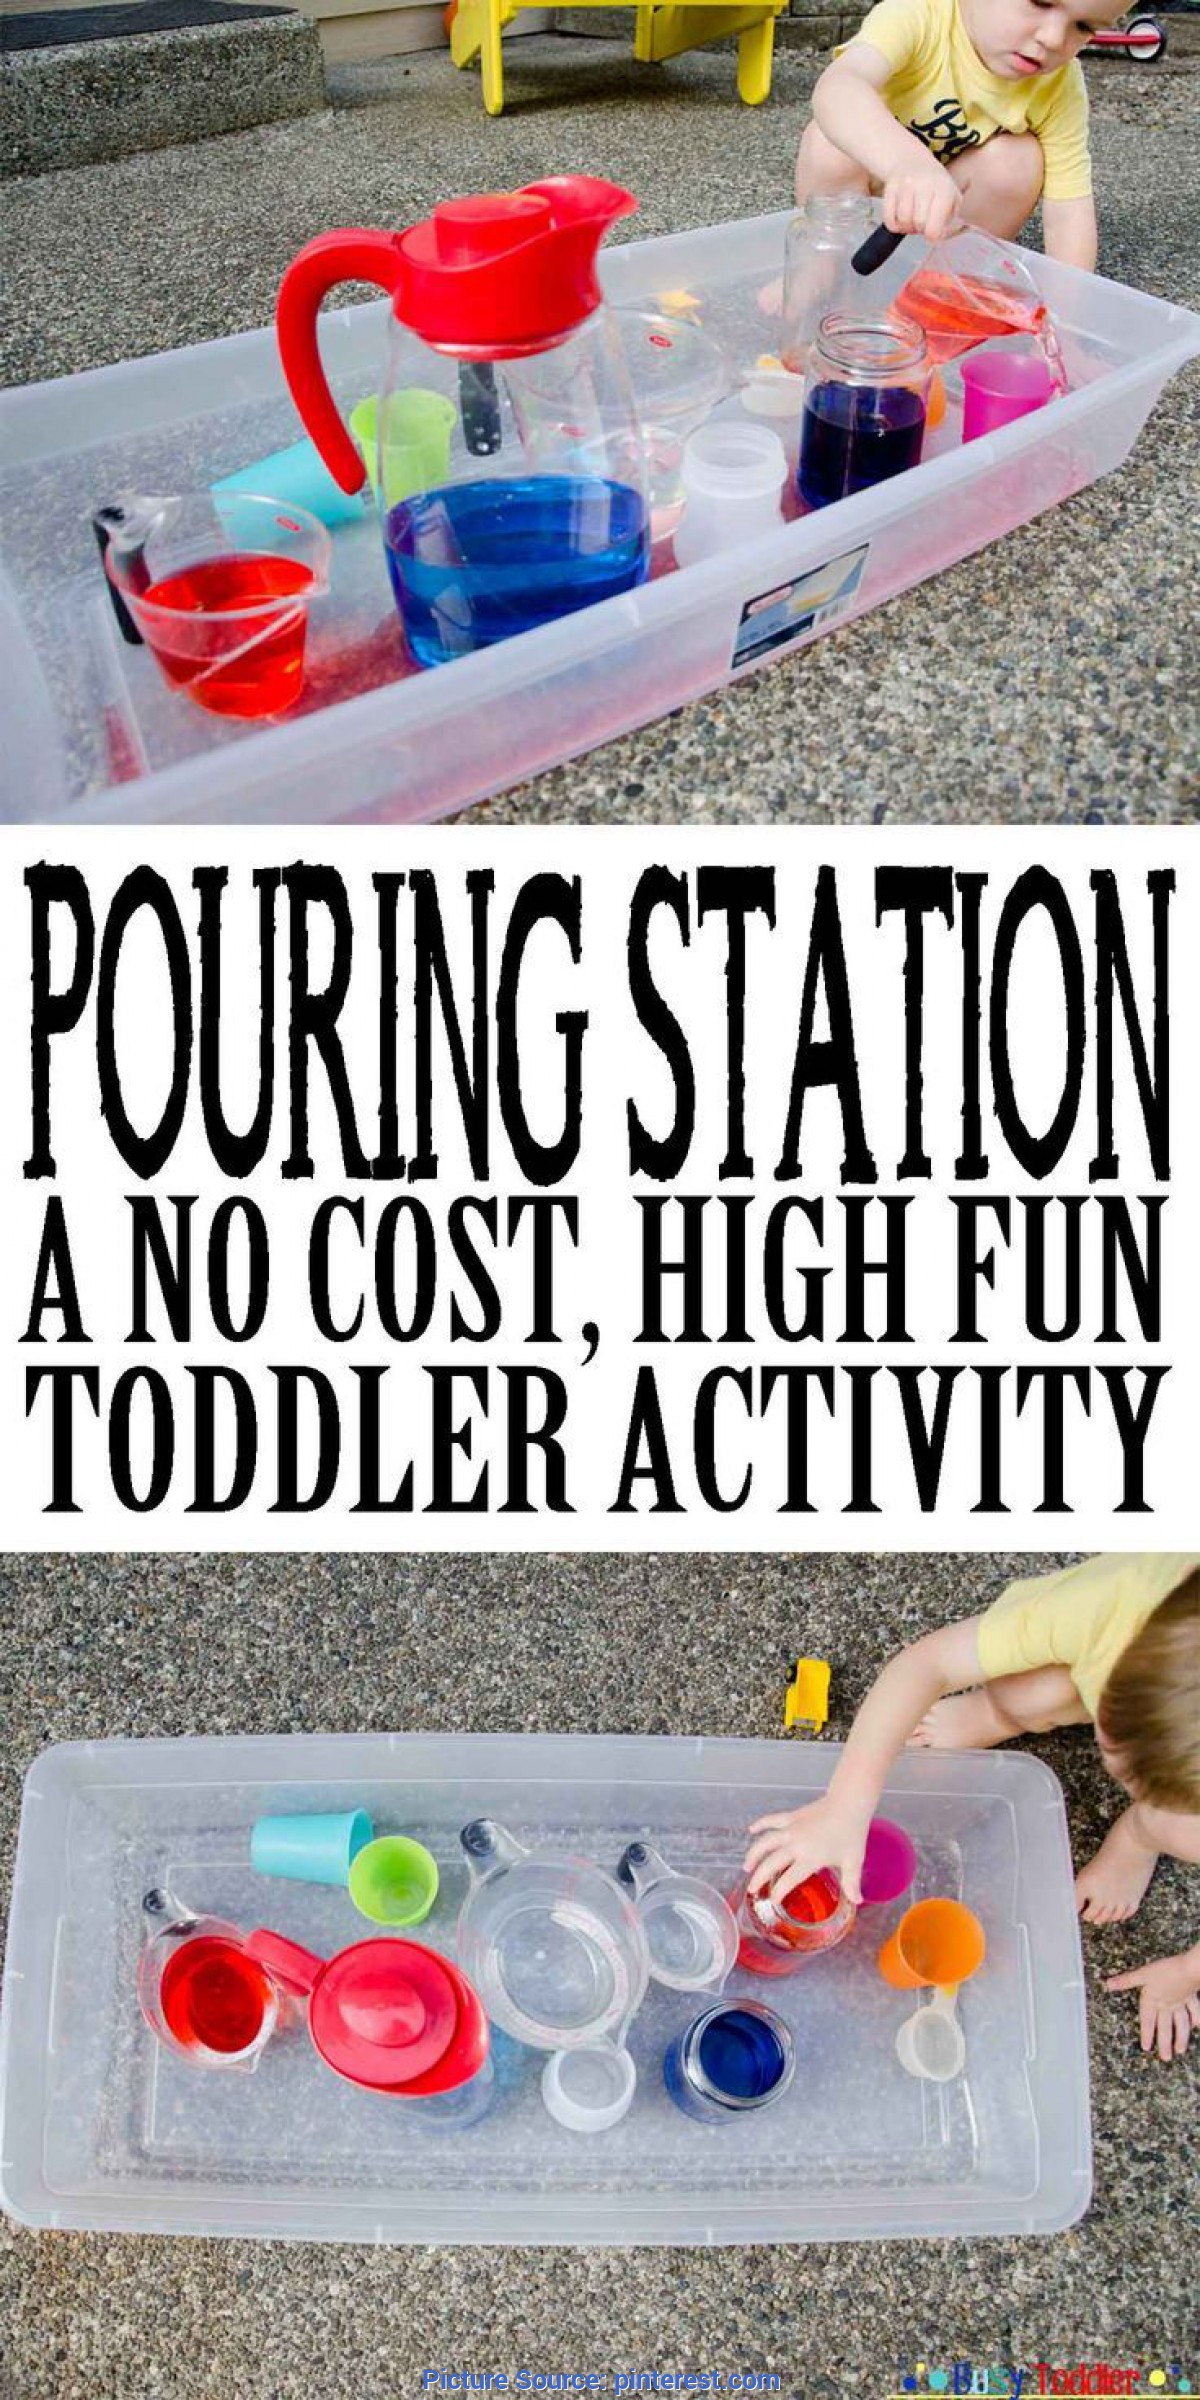 Excellent Nursery Activities For 2 Year Olds Best 25+ Outdoor Toddler Activities Ideas On Pinterest | Outdoo